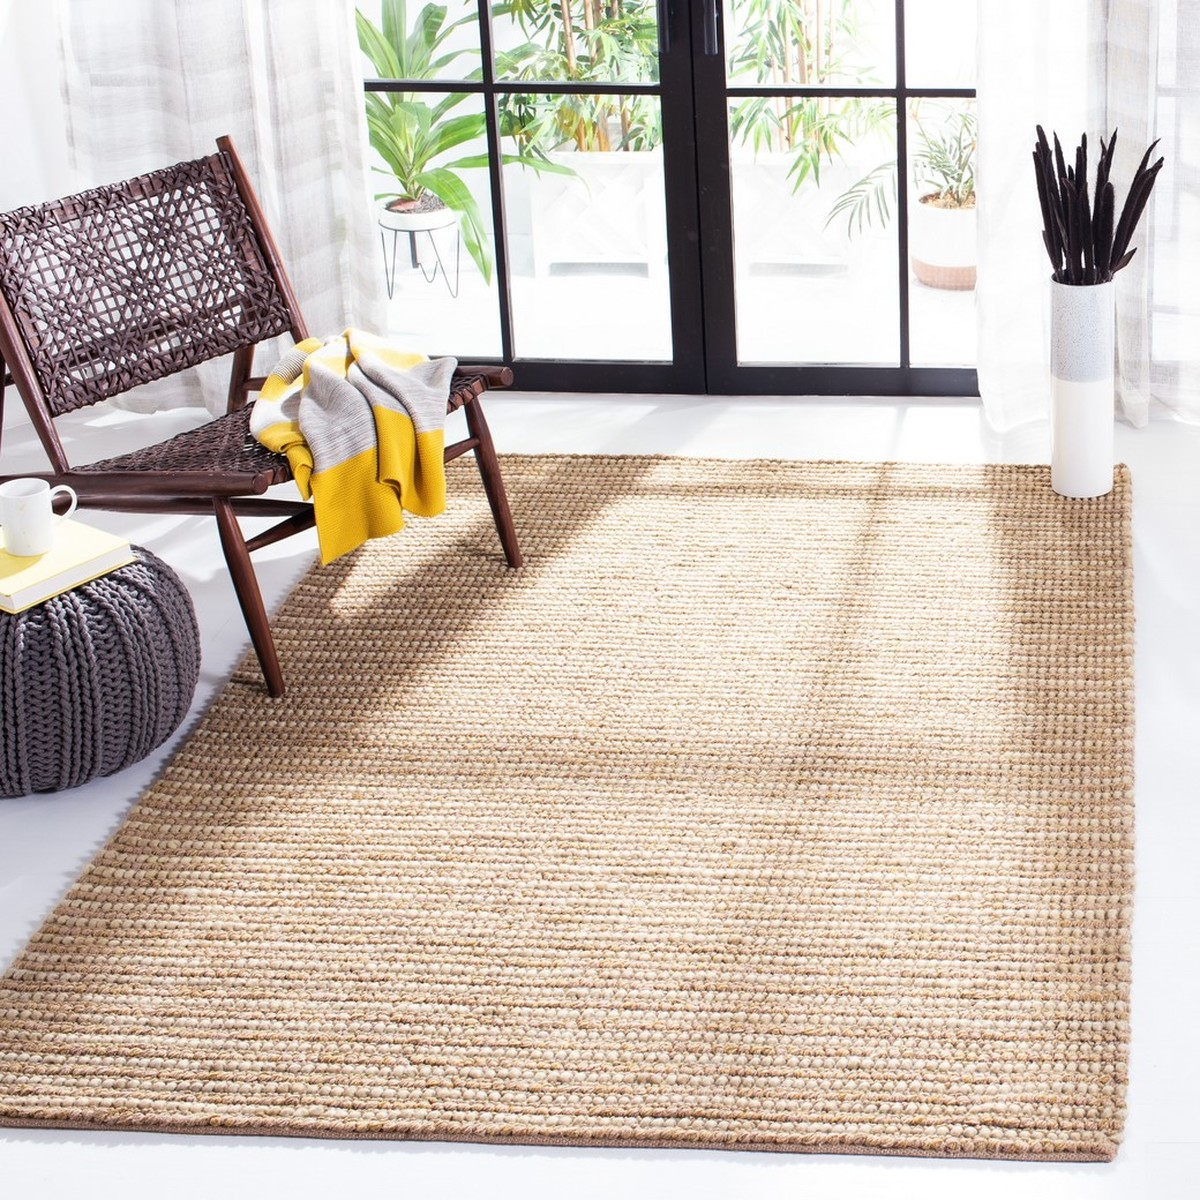 rug boh525f bohemian area rugs by safavieh